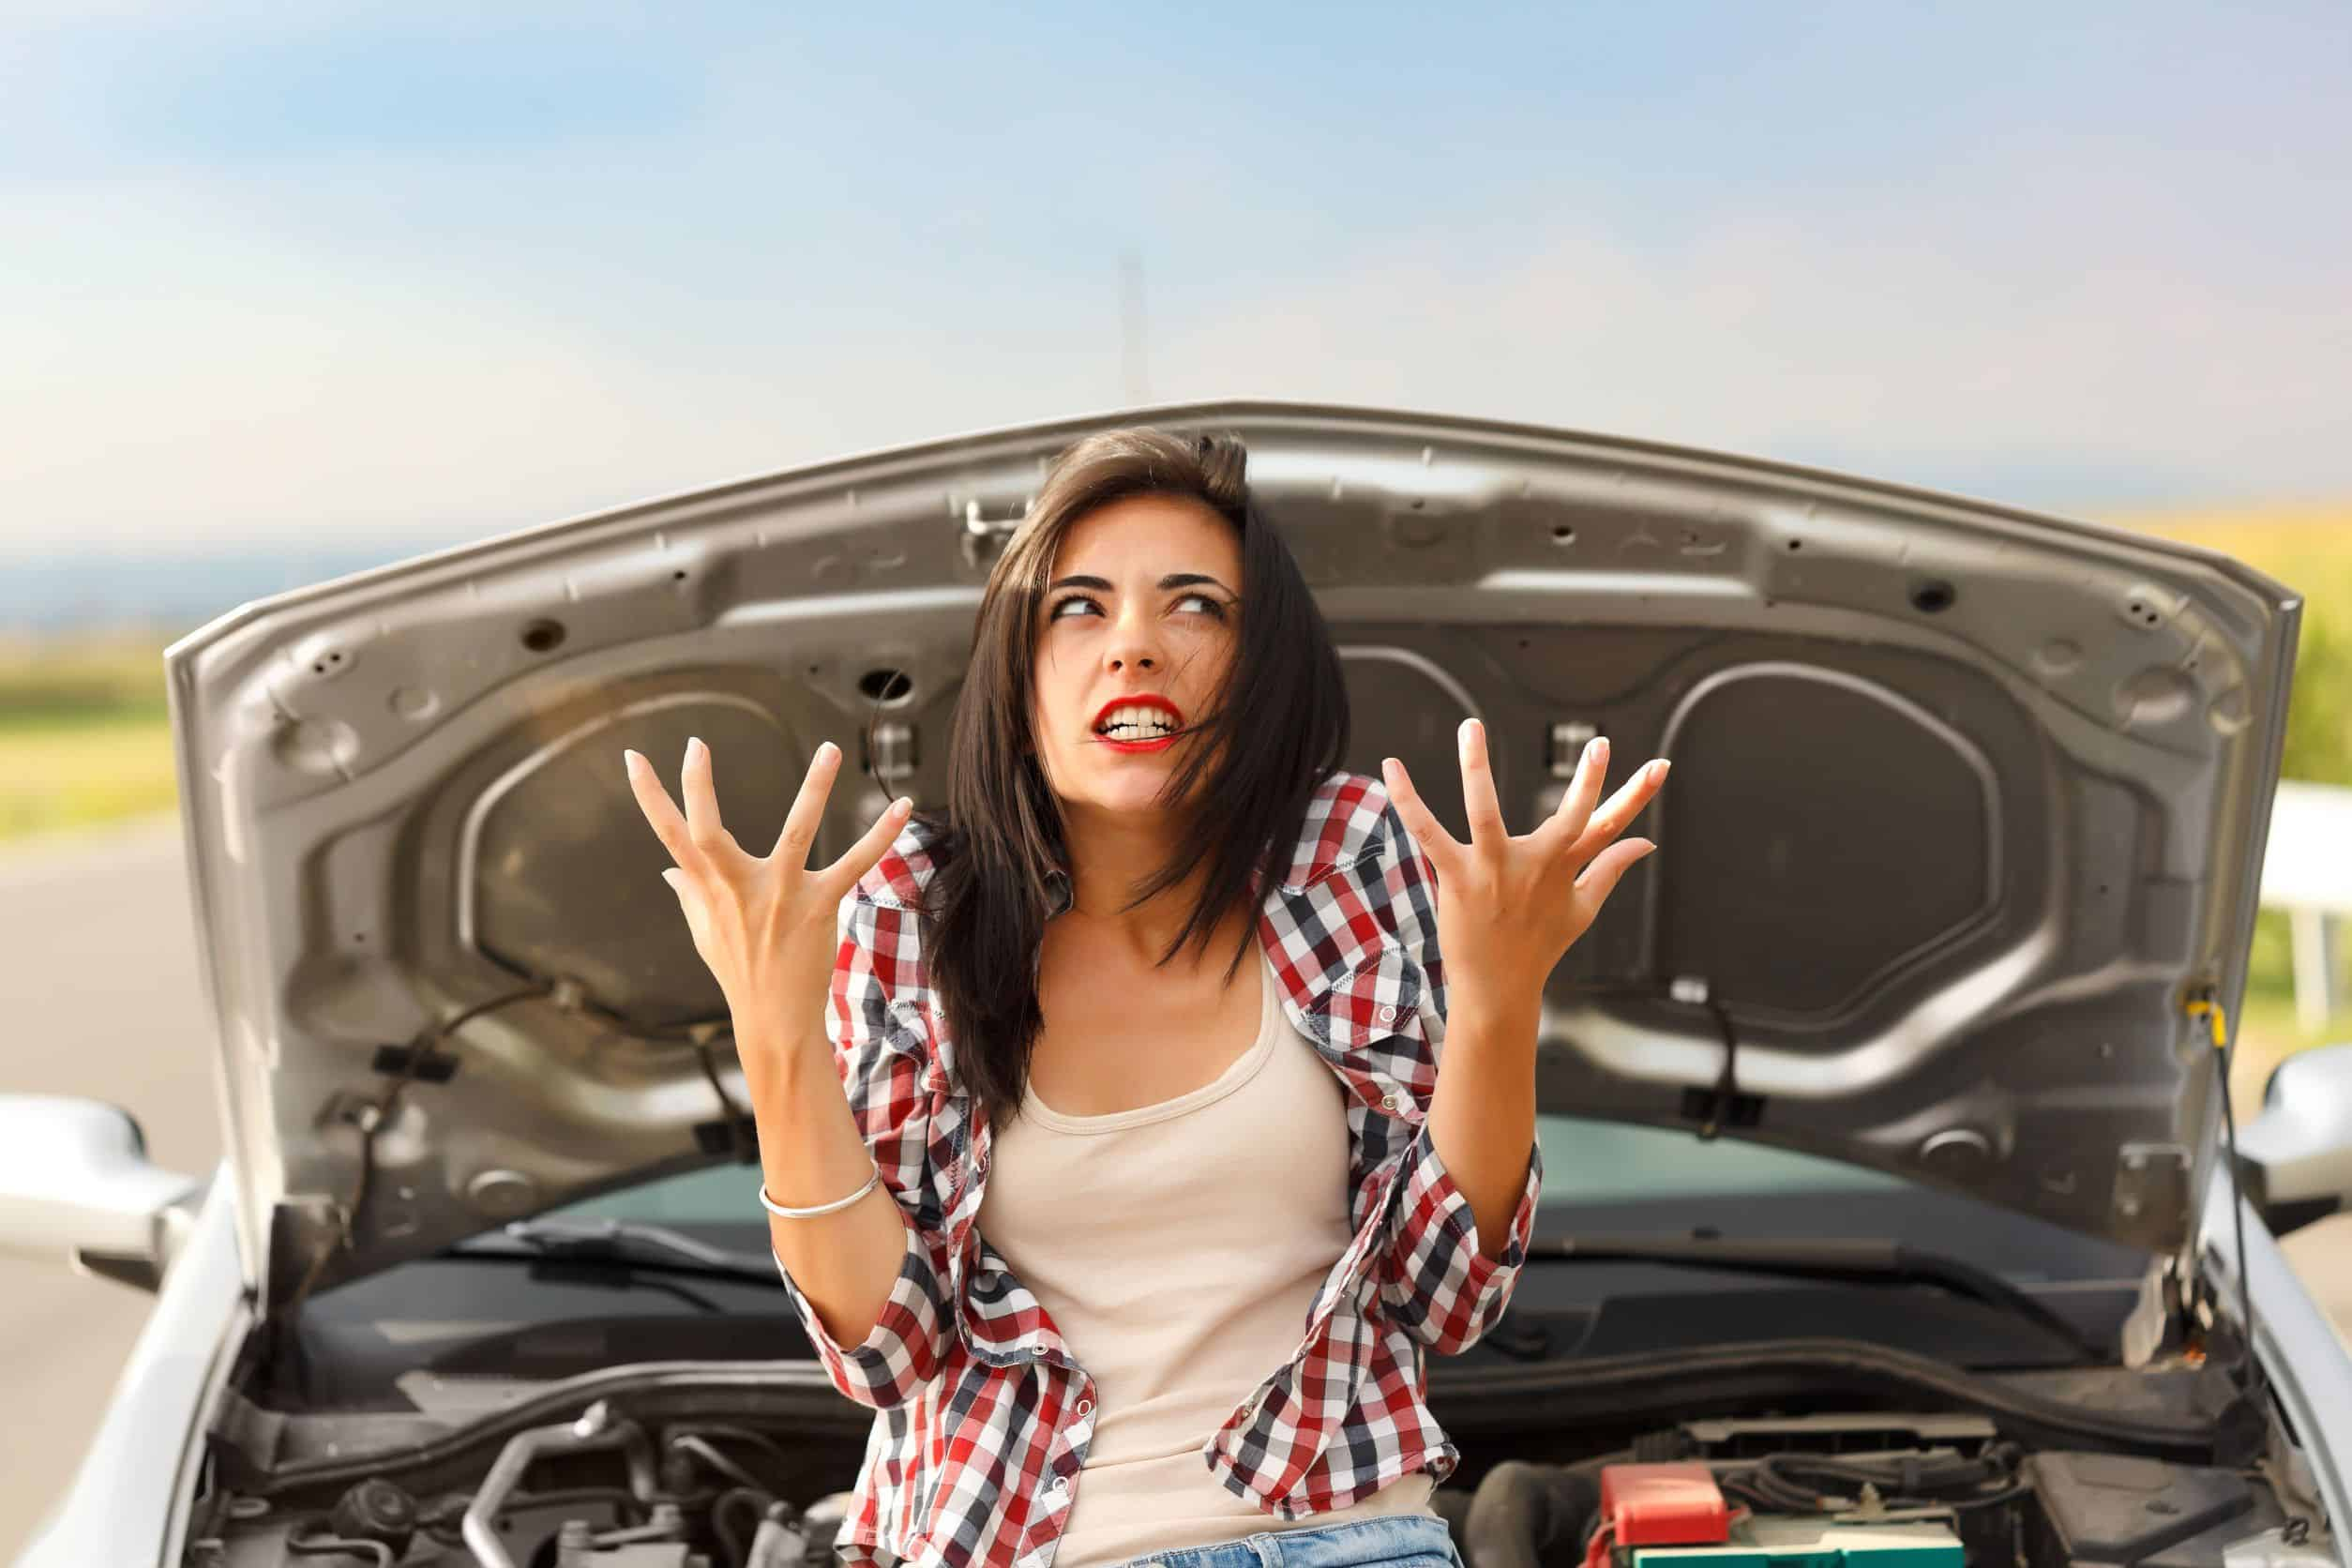 Buy a new car or fix the one I have?